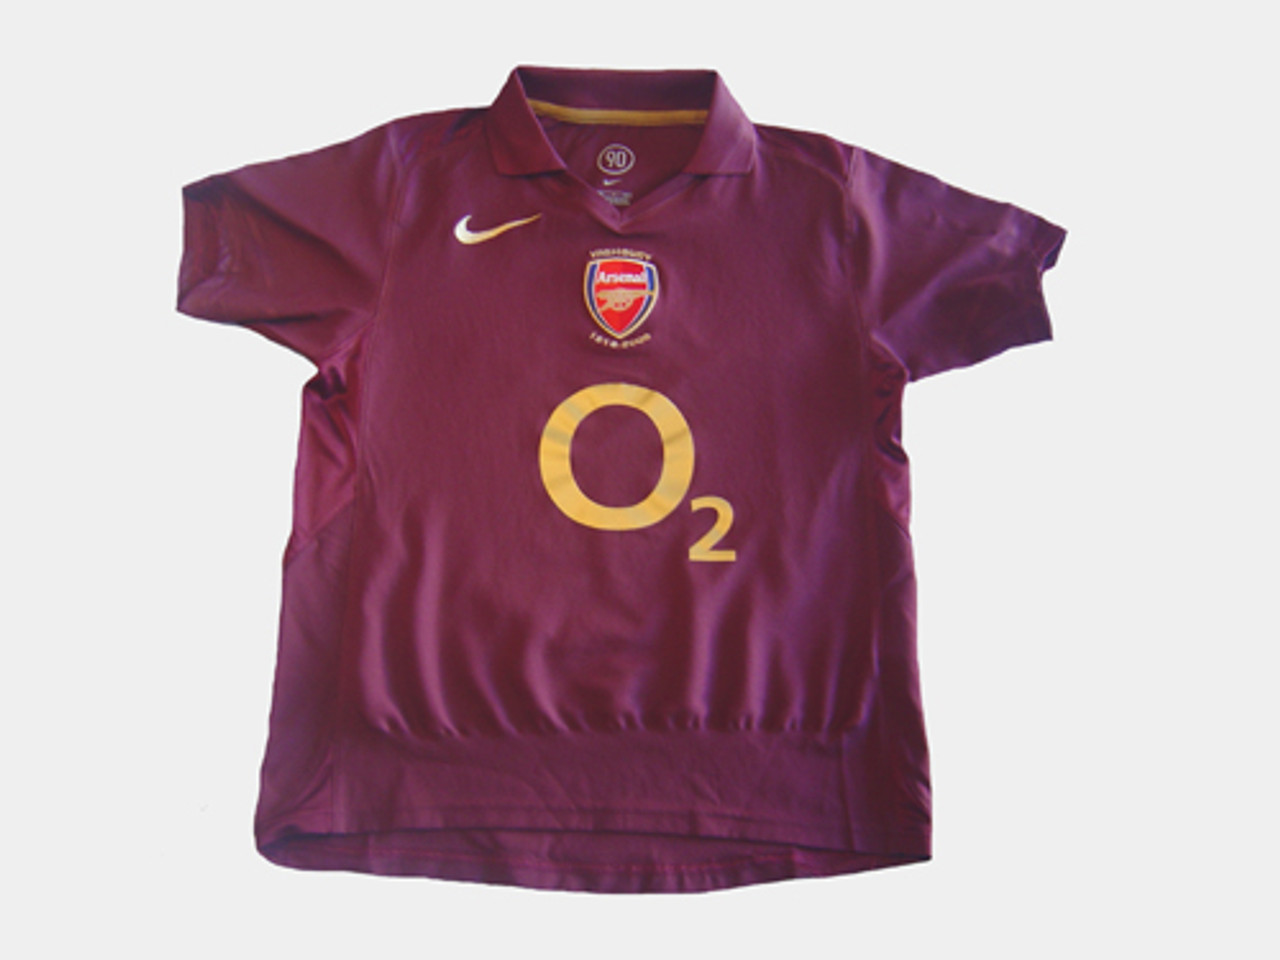 new concept 819e0 9cfd1 NIKE ARSENAL 2006 HOME `REYES` JERSEY